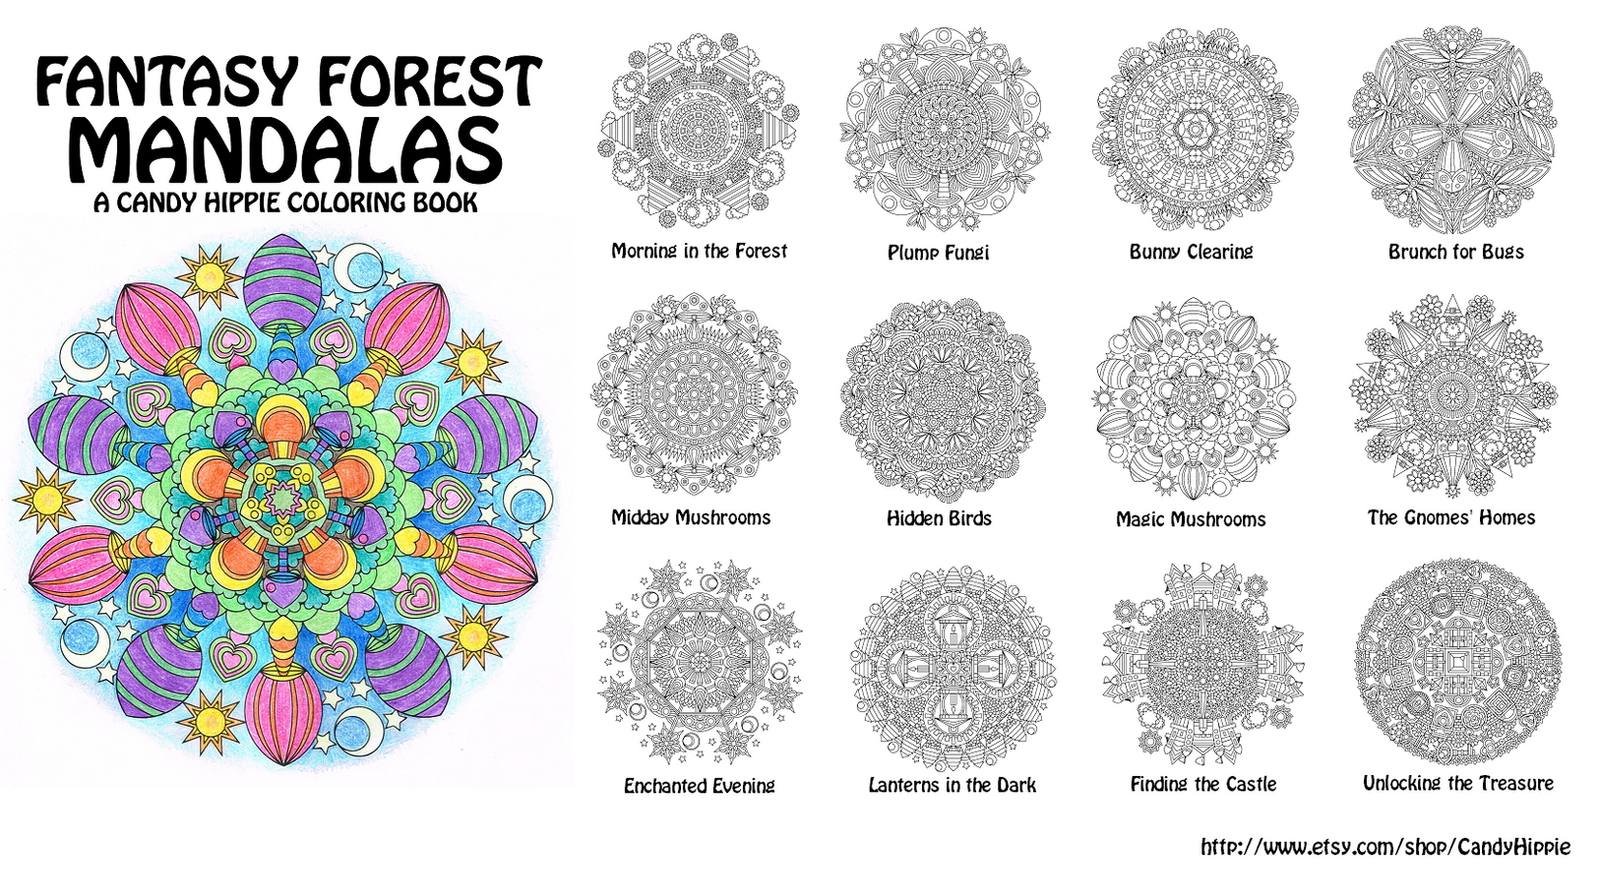 Fantasy Forest Mandalas Coloring Book By Candy Hippie